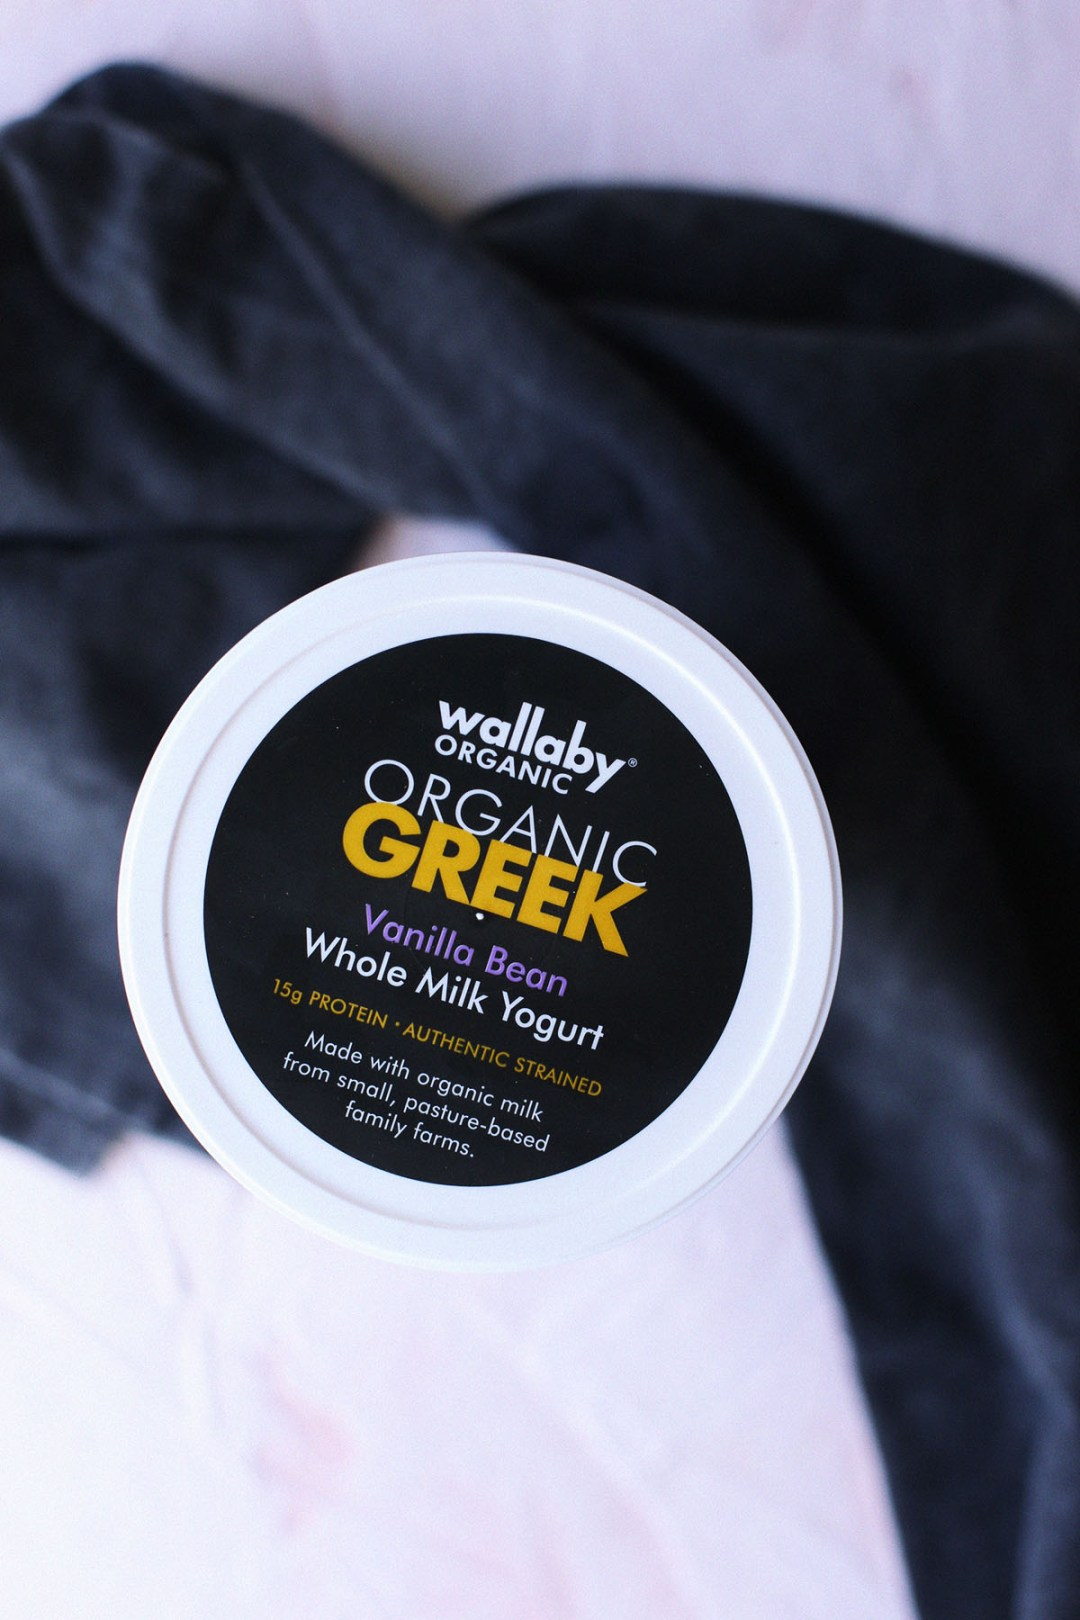 What I've been eating: Wallaby Organic Greek Yogurt